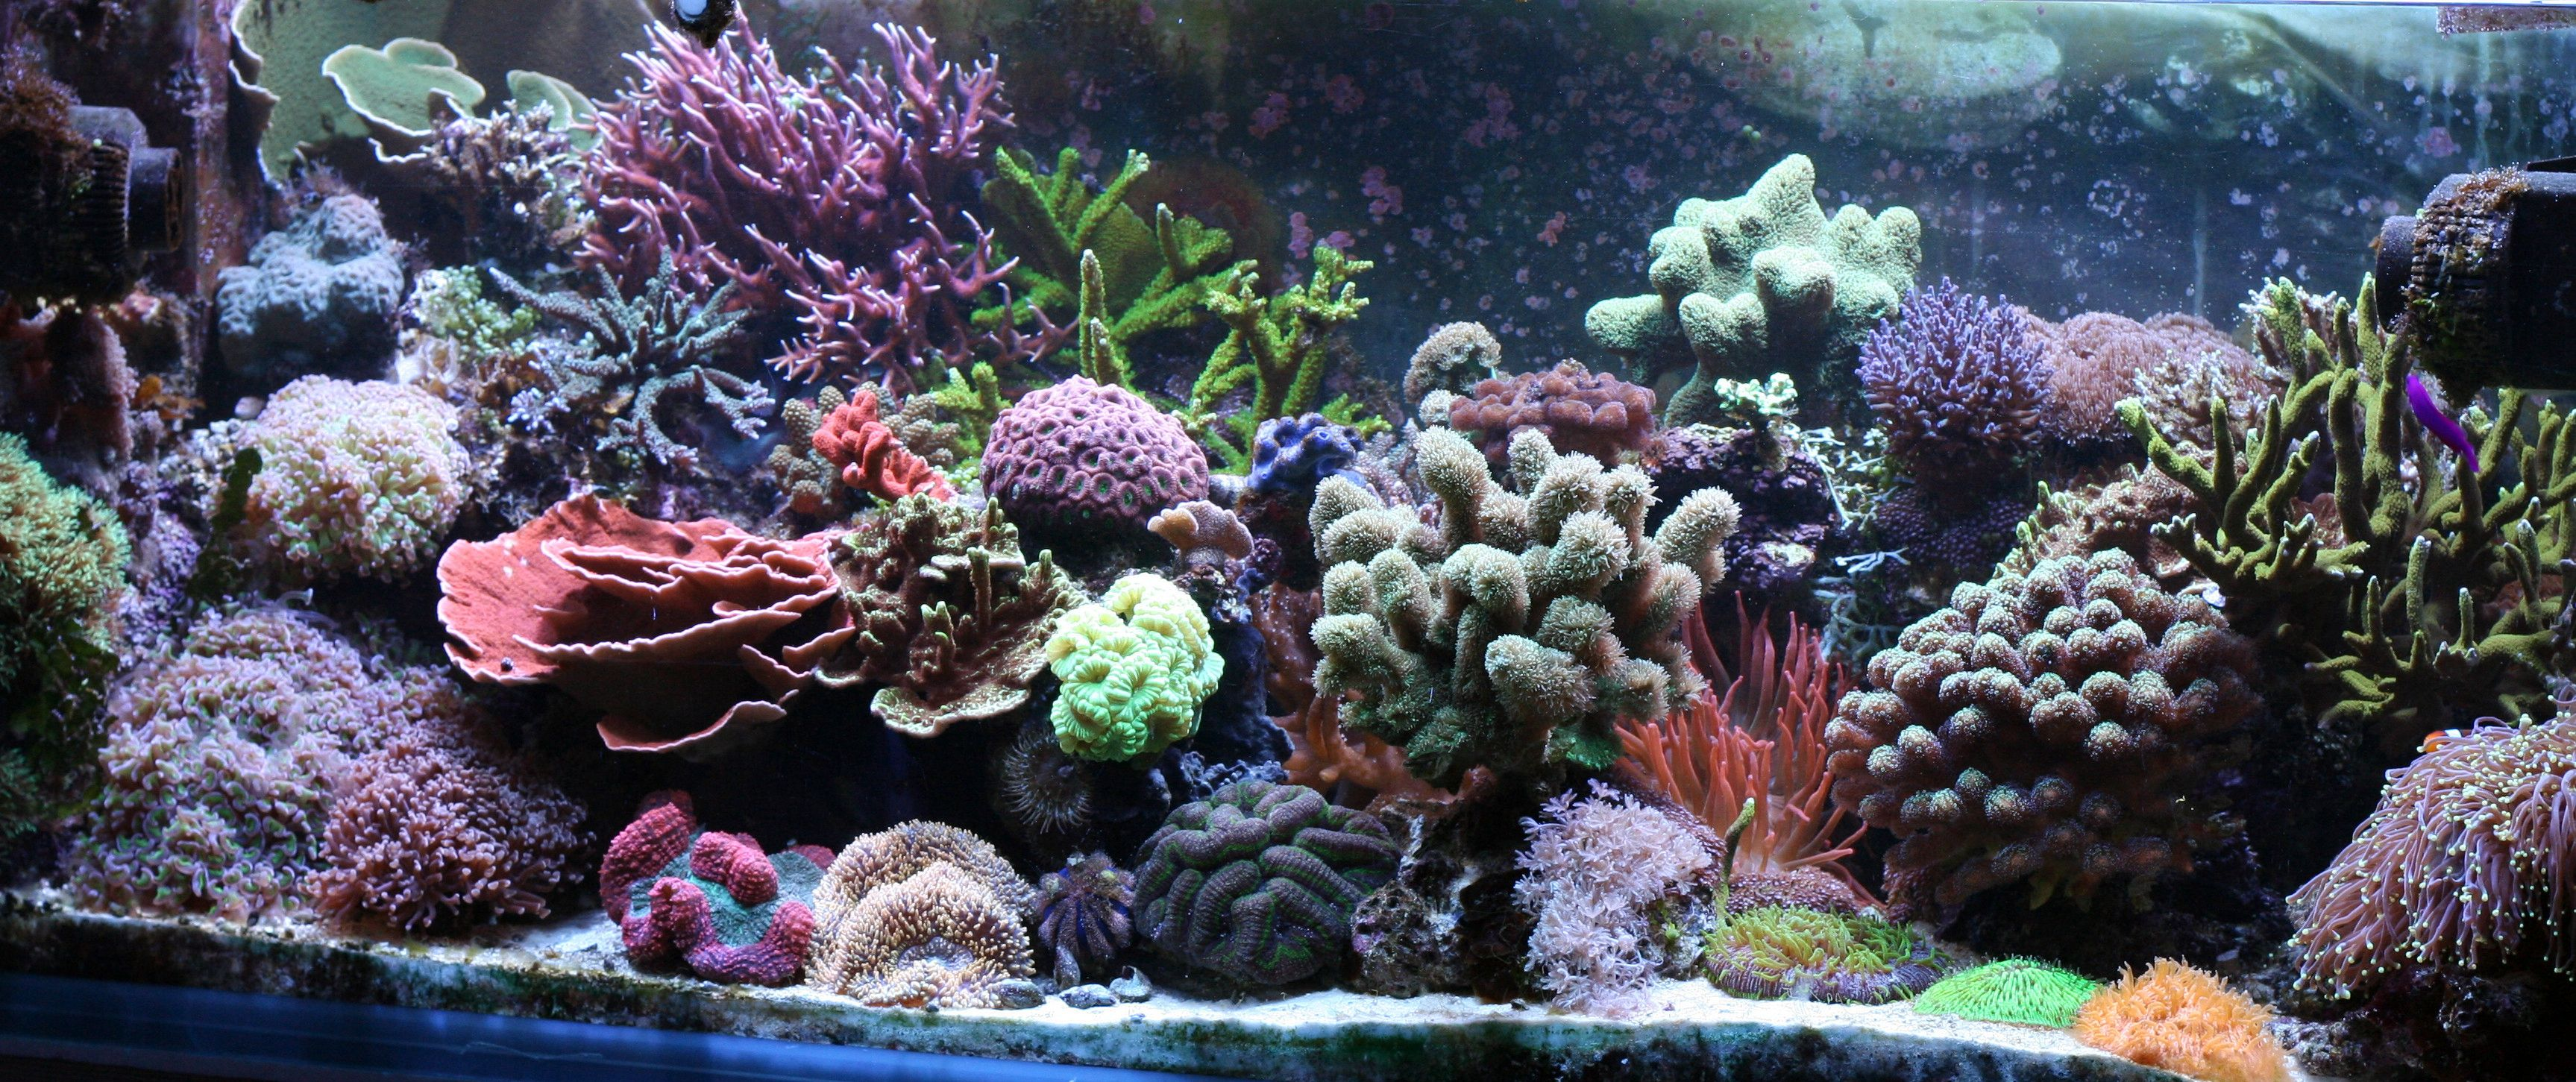 Saltwater aquarium - Salt Water Aquarium Tiedosto Reef Aquarium At Home Jpg Wikipedia